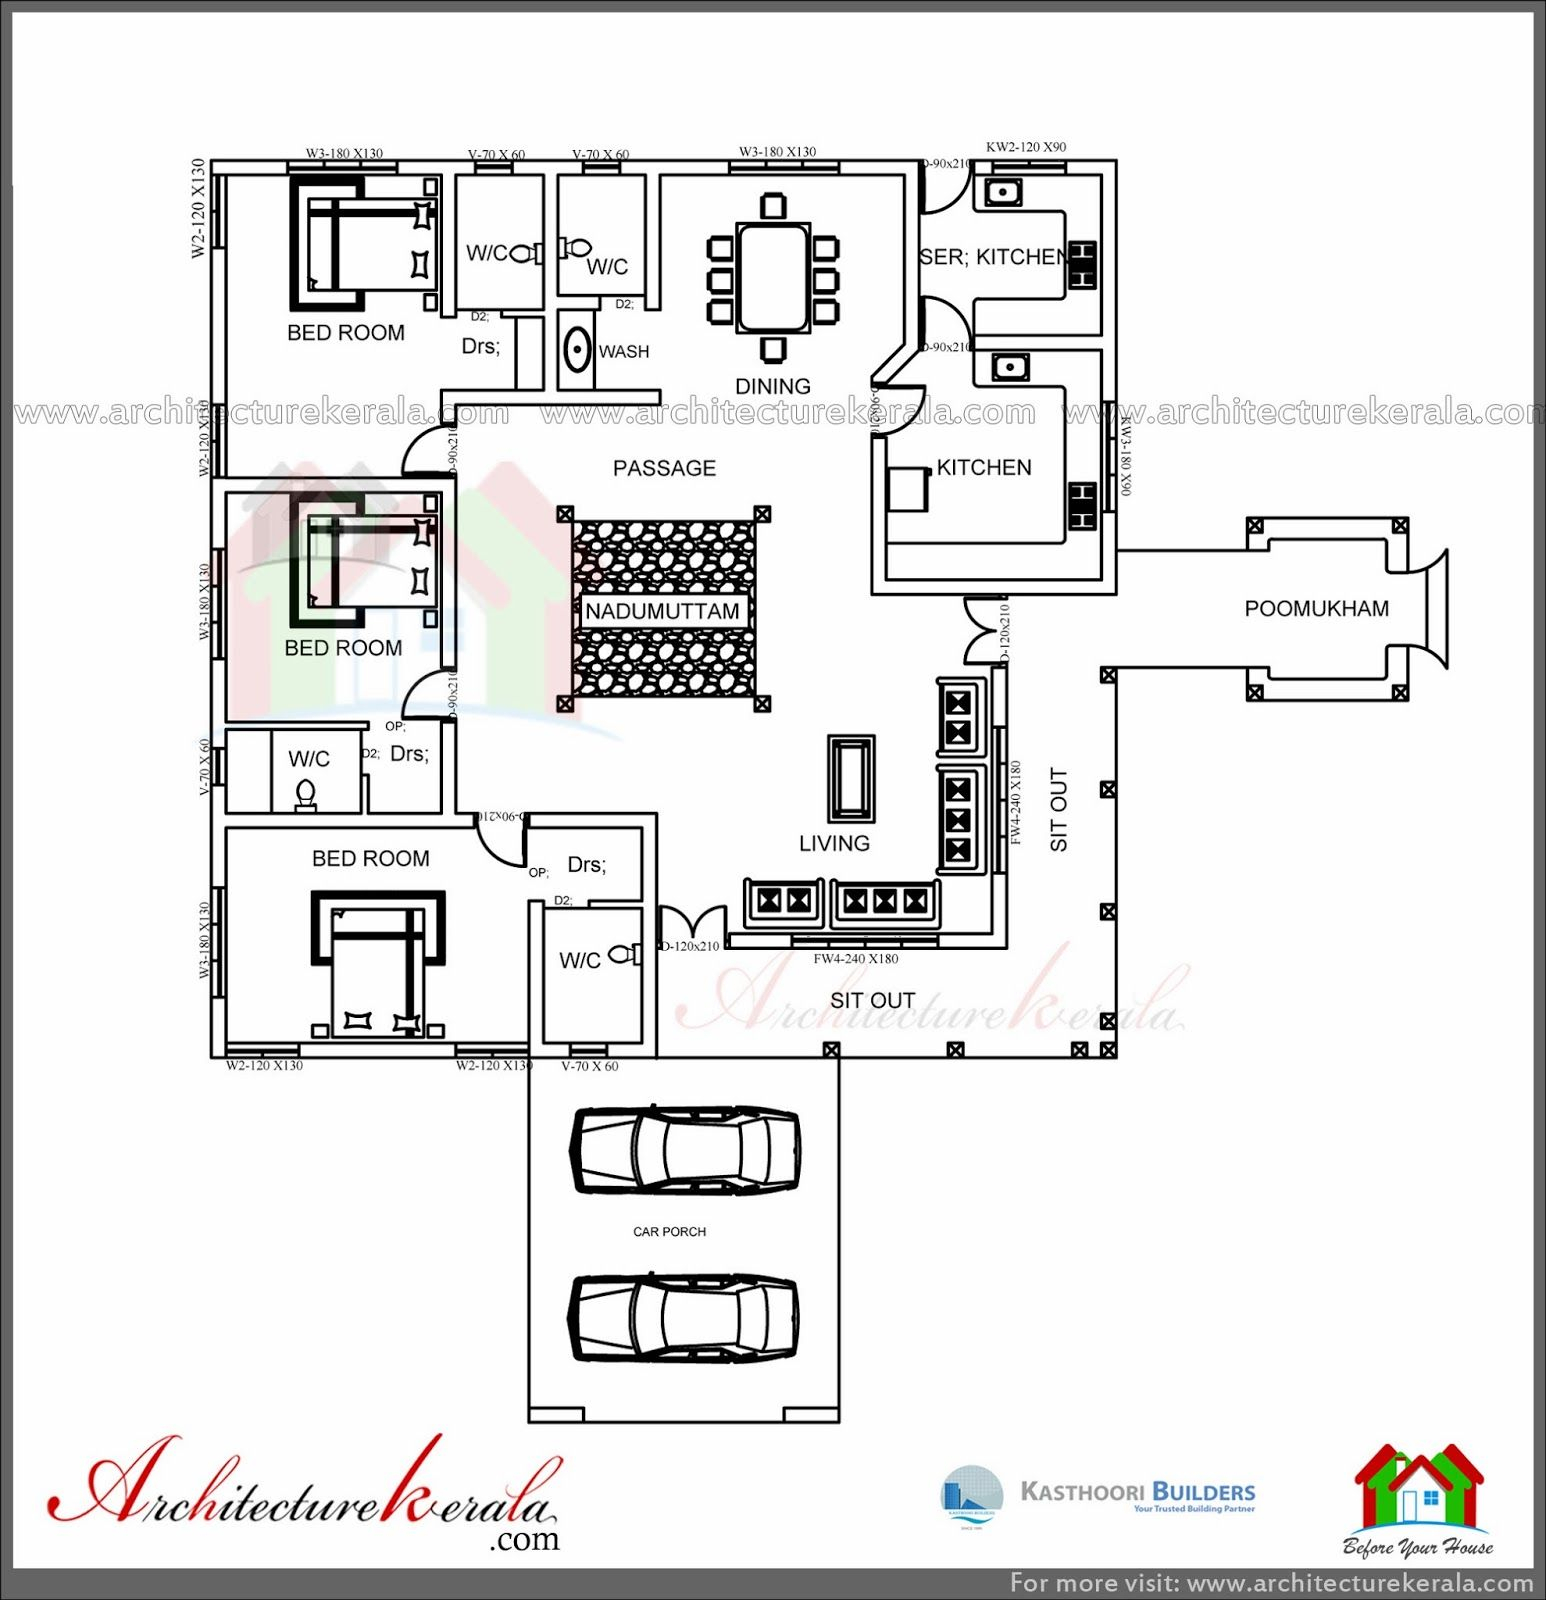 Fabulous Architecture Kerala: Traditional House Plan With Nadumuttam And with regard to Kerala House Design With Floor Plans